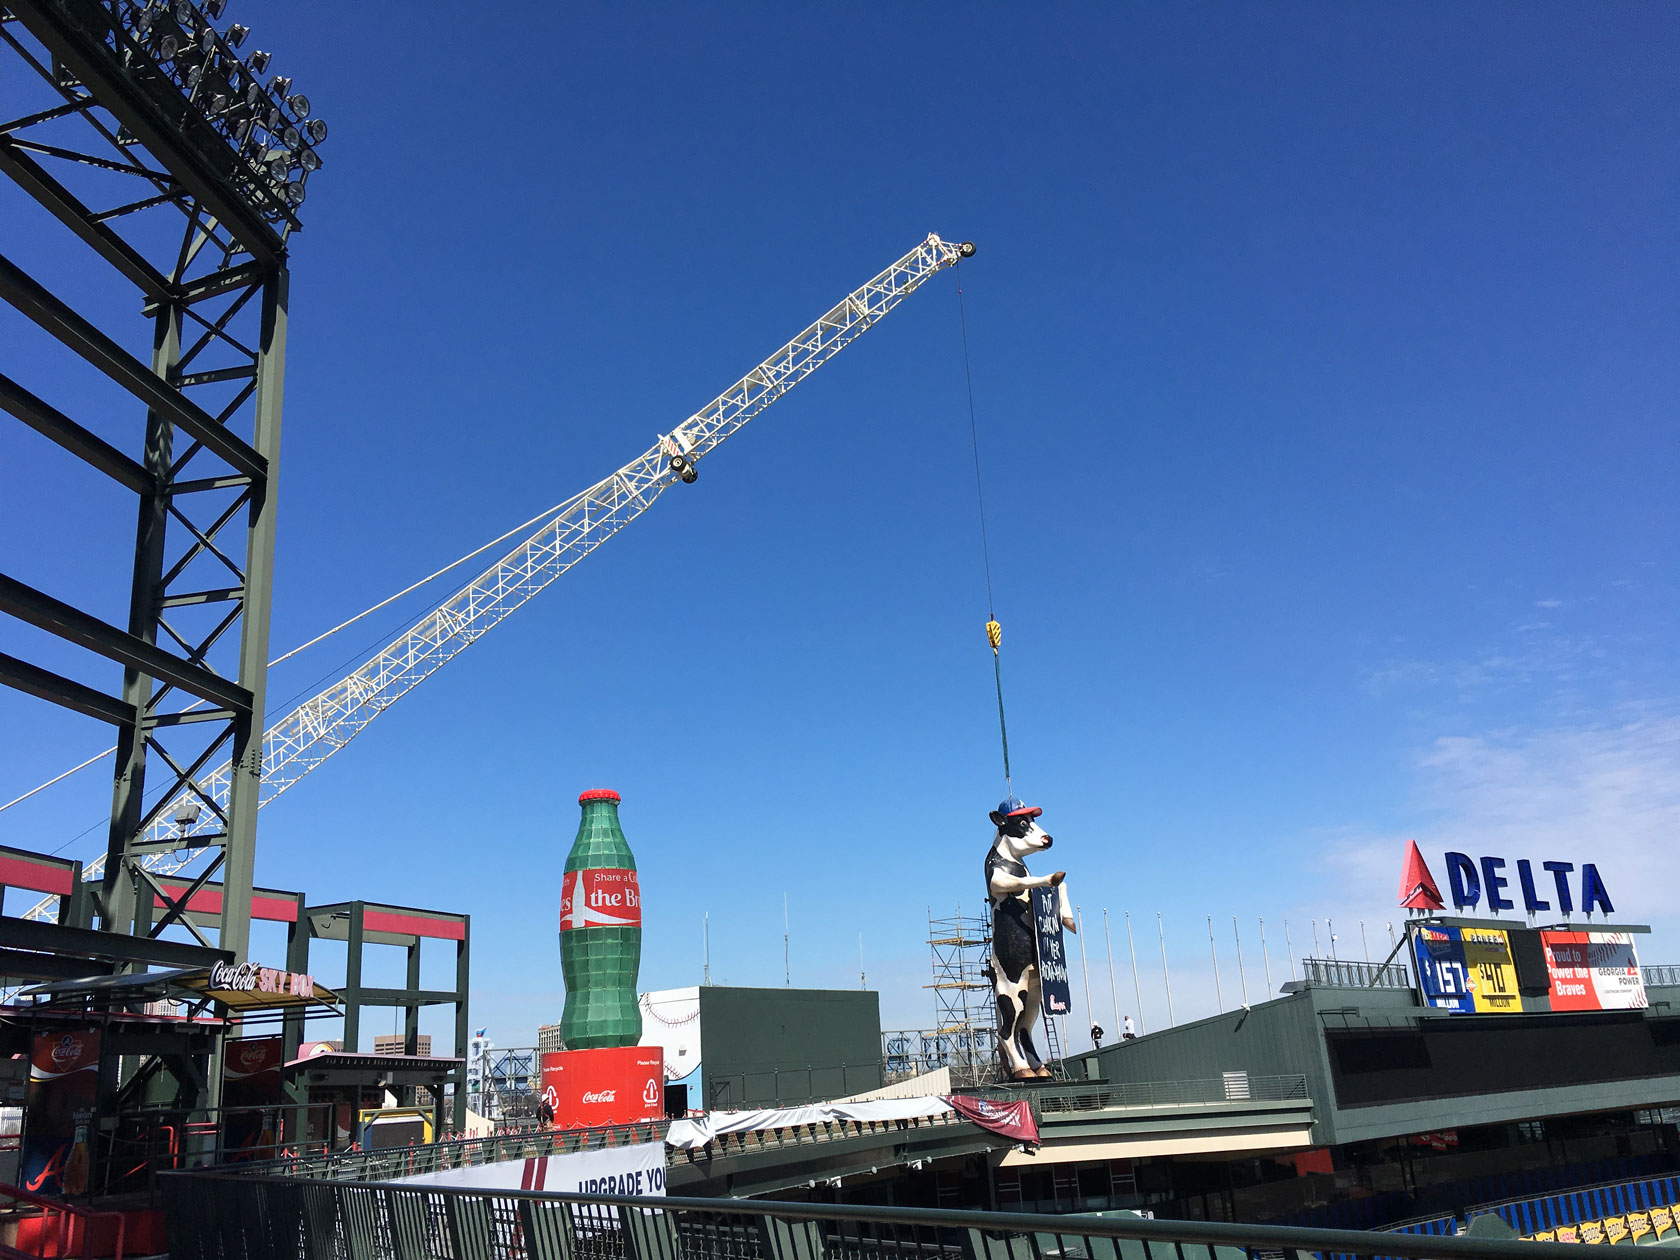 The Chick-fil-A Cow says was lifted by crane from Turner Studios to prepare for its new home in SunTrust Park.